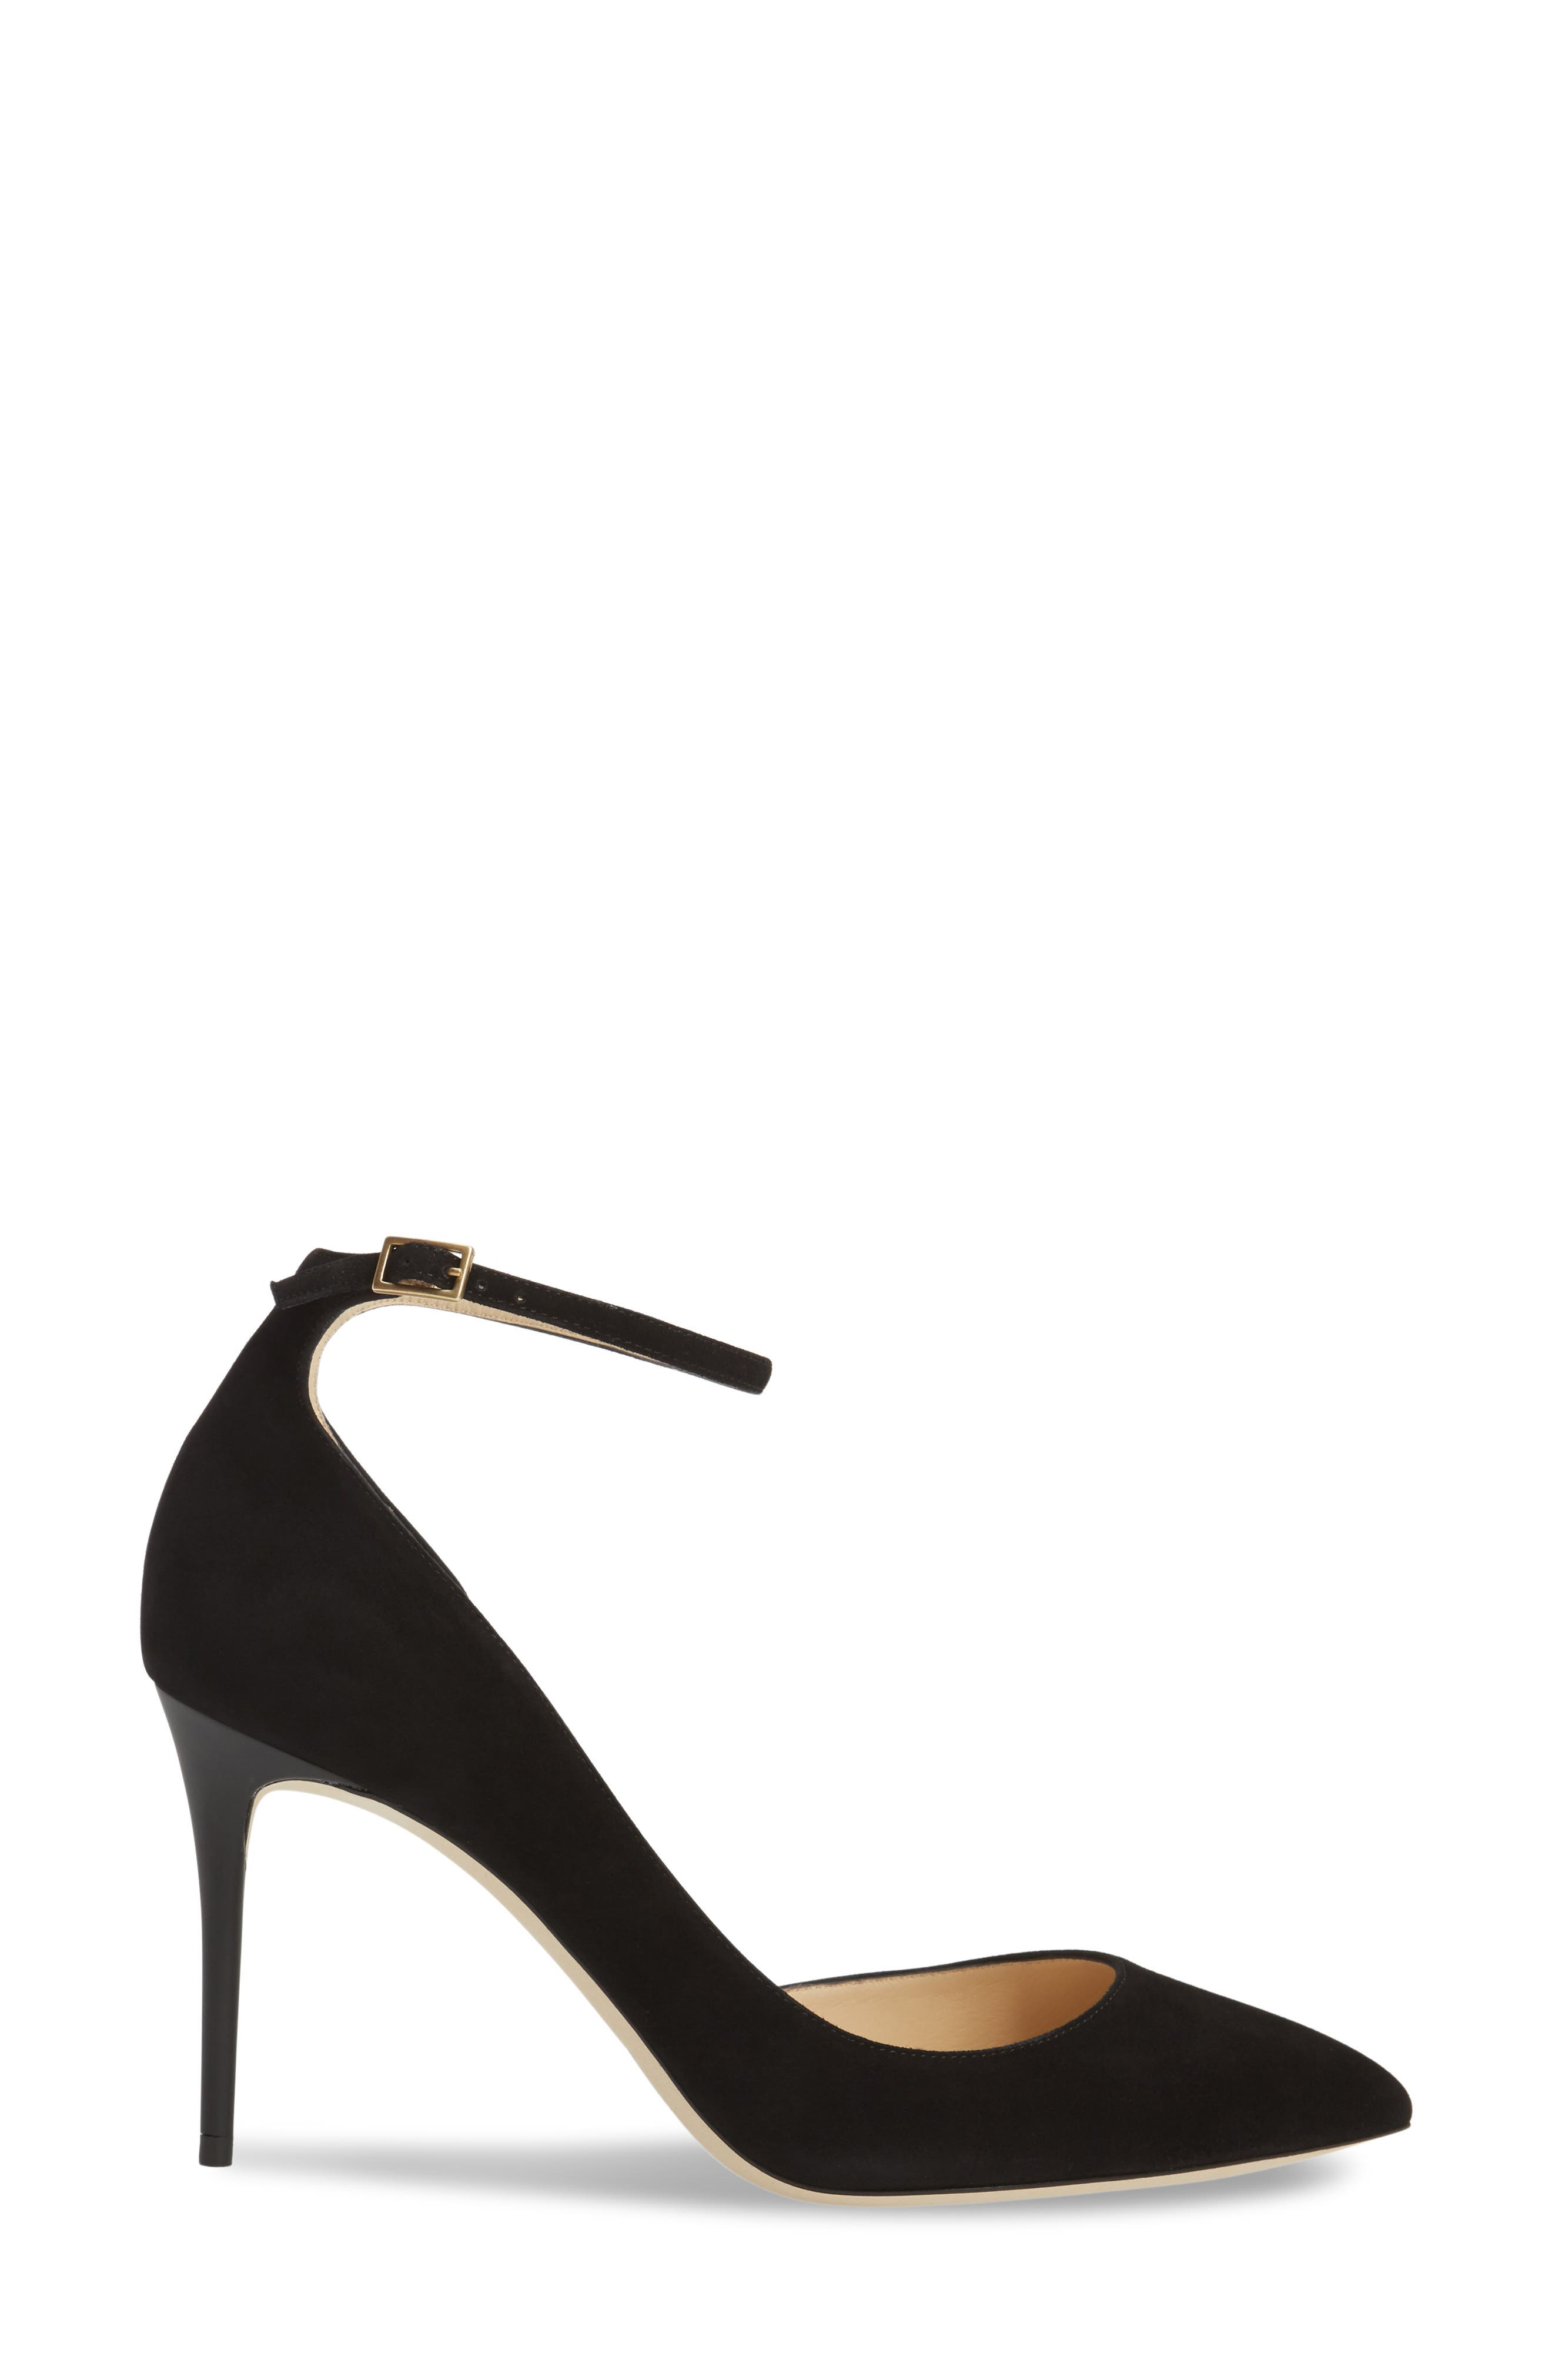 'Lucy' Half d'Orsay Pointy Toe Pump,                             Alternate thumbnail 14, color,